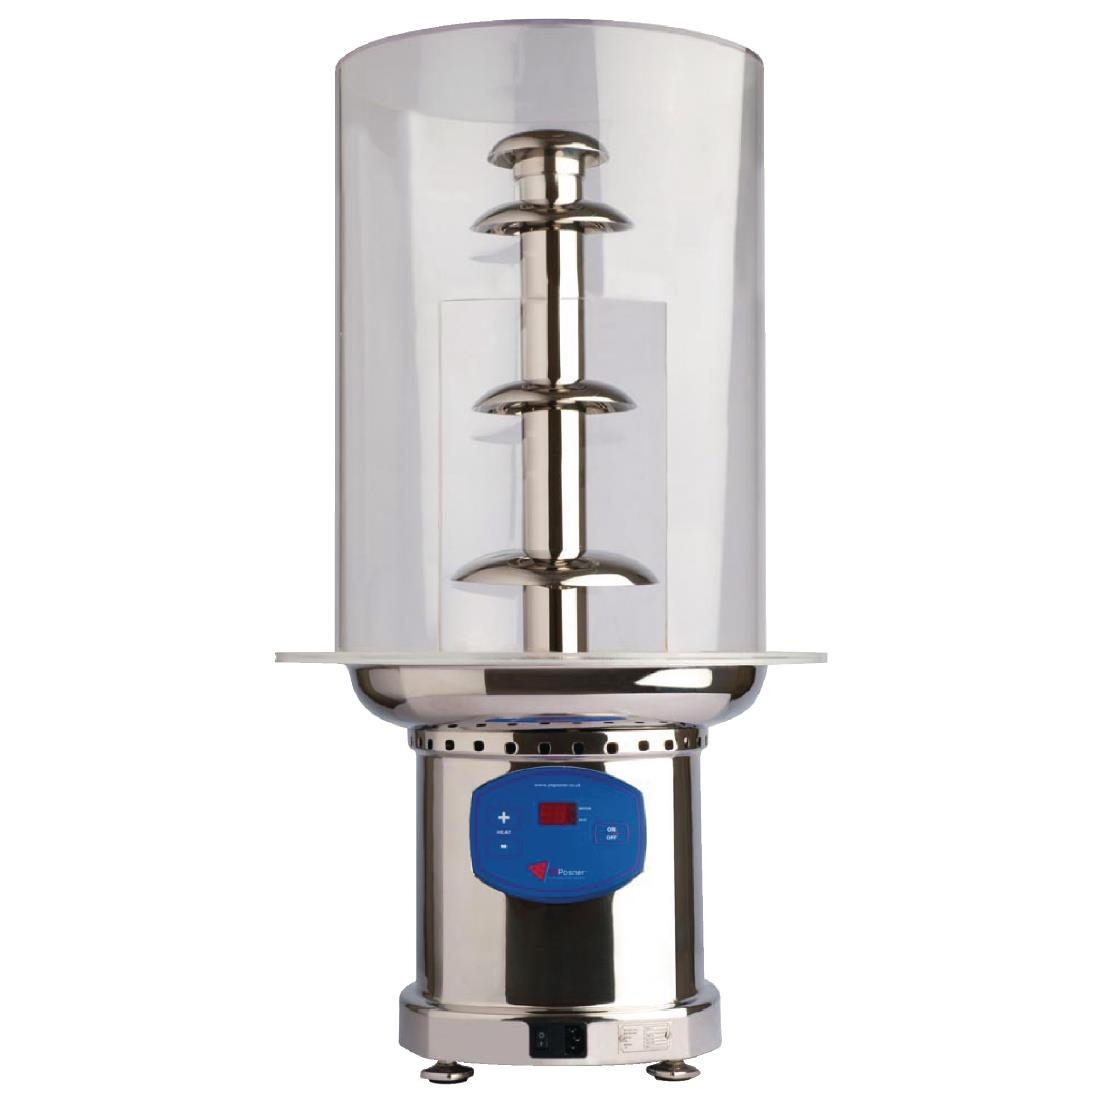 Image of JM Posner Chocolate Fountain Wind Guard for DN675